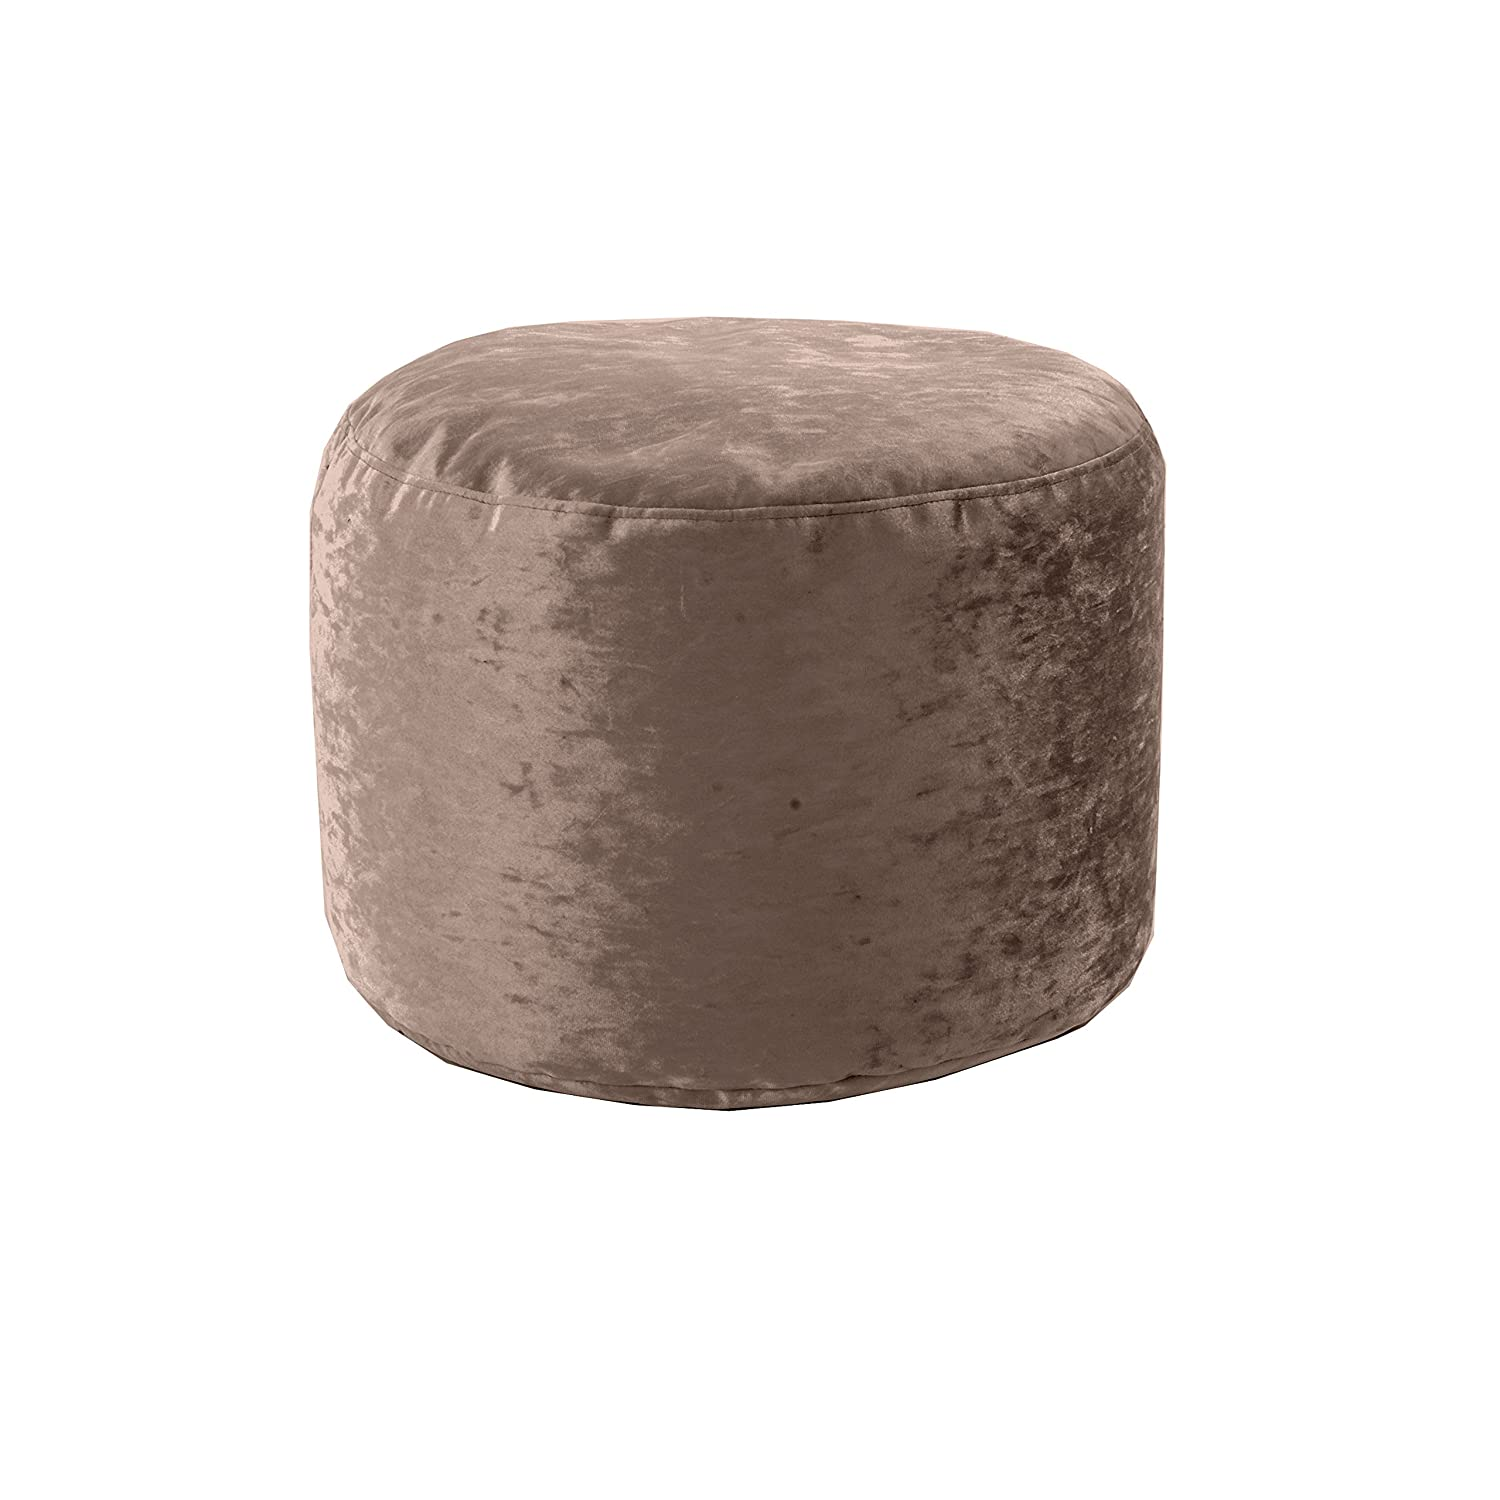 Round Bean Bag Footstool Pouffe Seat in Shiny Crushed Velvet Fabric HIPPO Chocolate